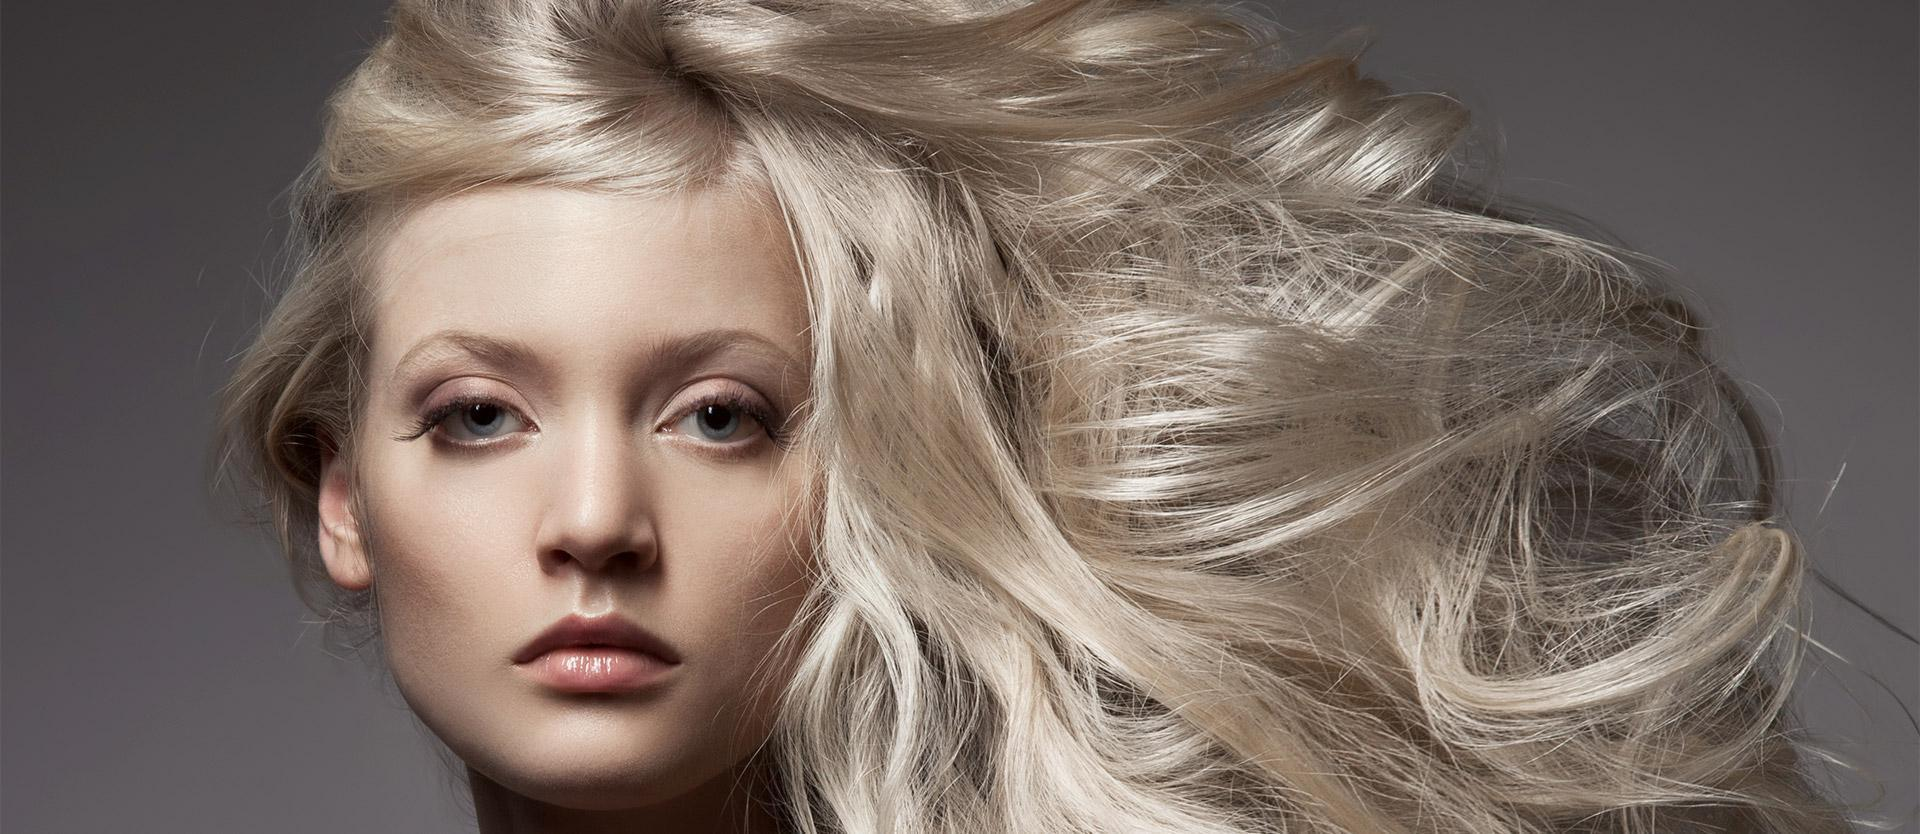 Hair Restoration Systems for Women